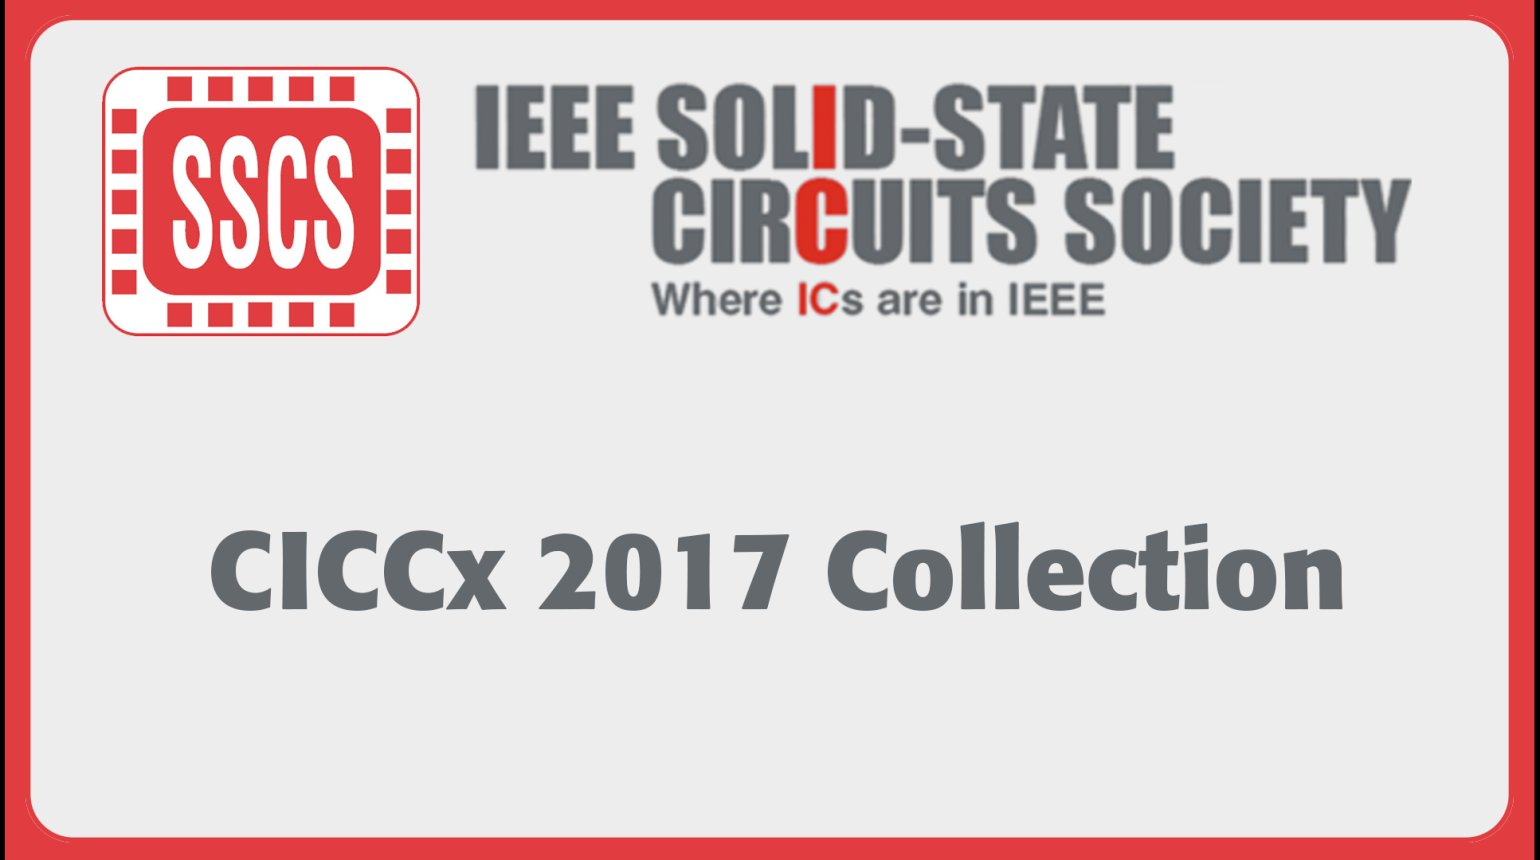 CICCx 2017 Collection